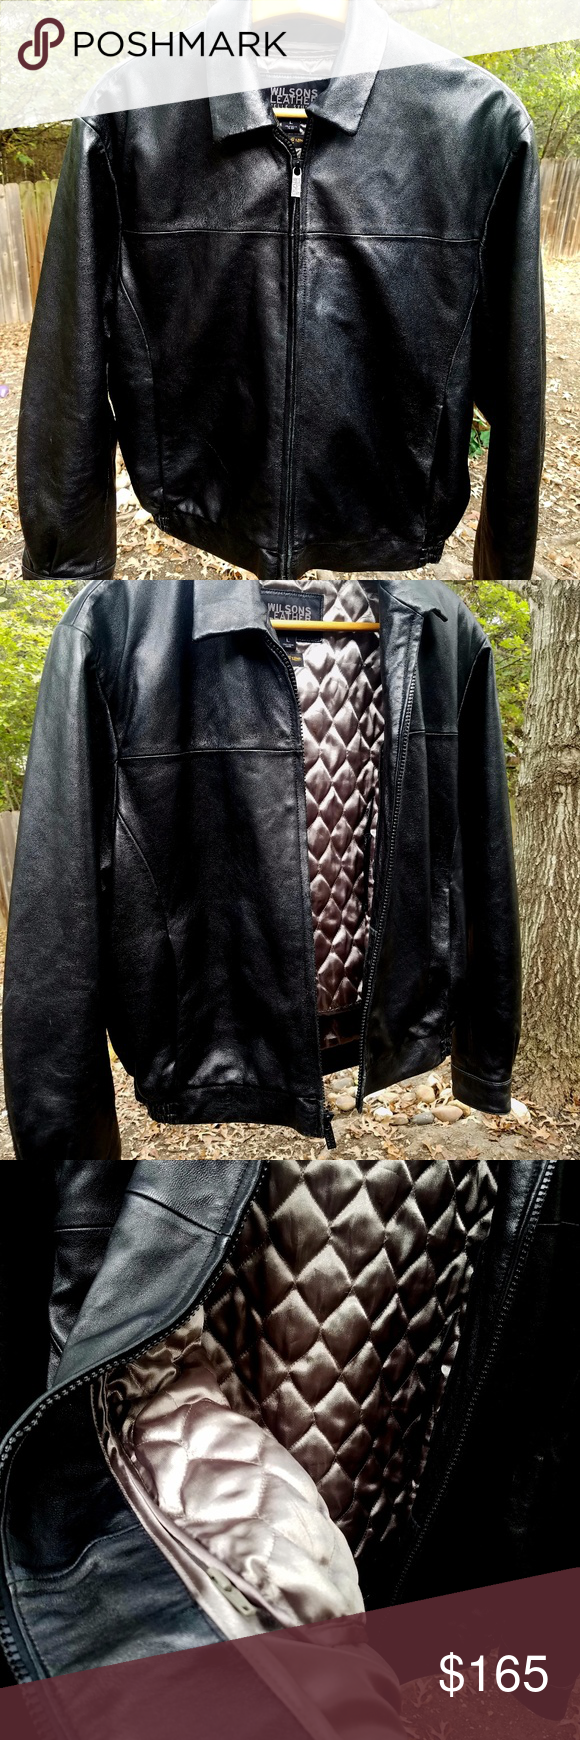 SALE EUC Men's Wilson Leather Pelle Jacket (With images